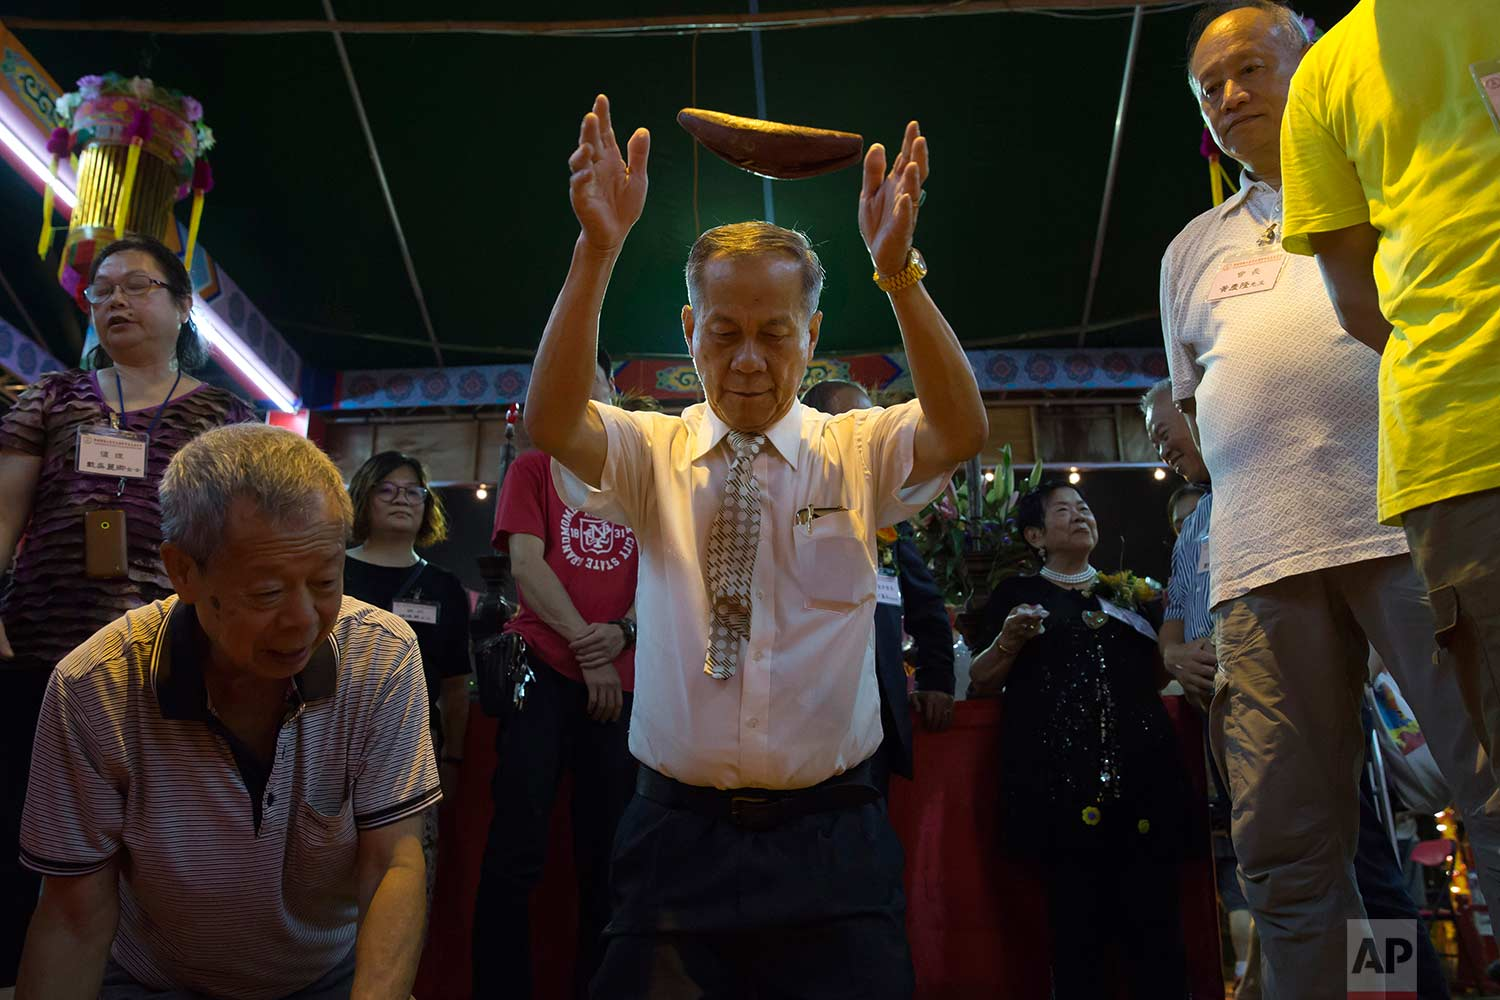 """In this Sept. 3, 2017, photo, a man throws wooden moon blocks to request an answer from the gods, at a makeshift altar during the """"Hungry Ghost Festival"""" in Hong Kong. (AP Photo/Kin Cheung)"""